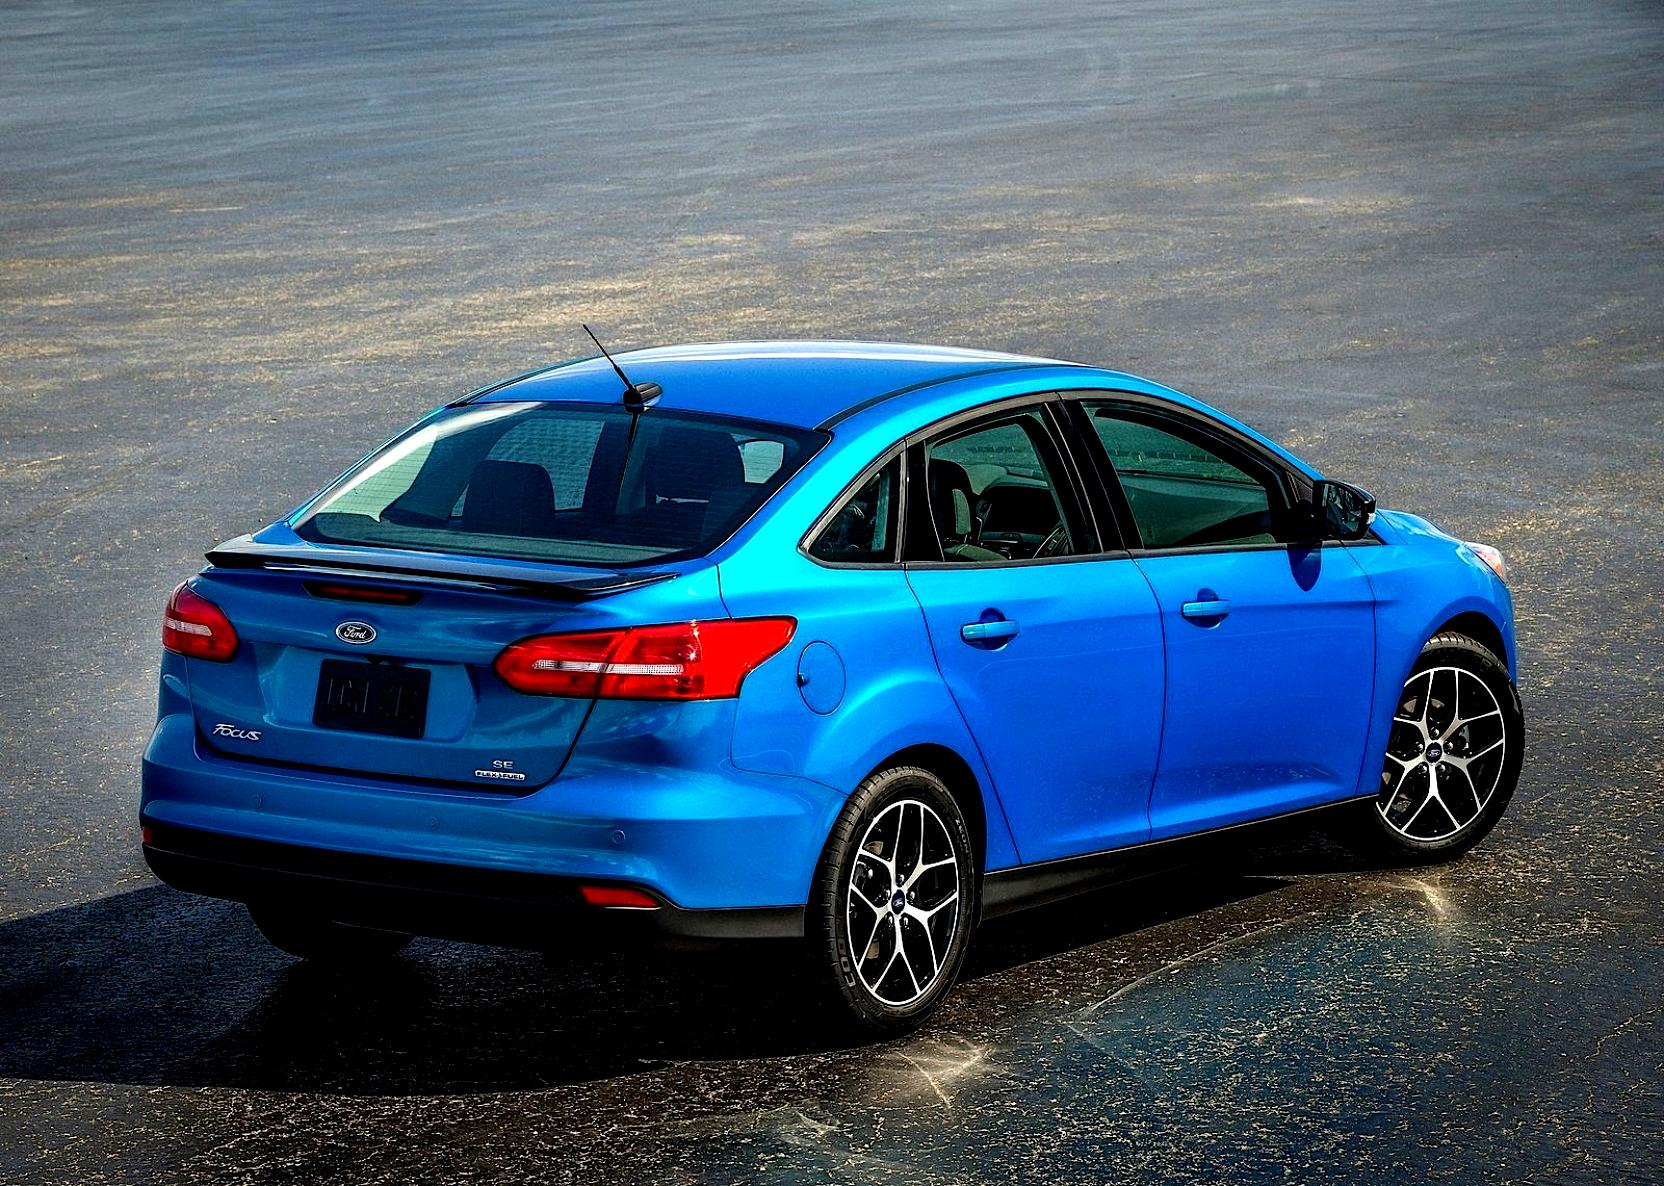 Ford Focus Sedan 2014 #26